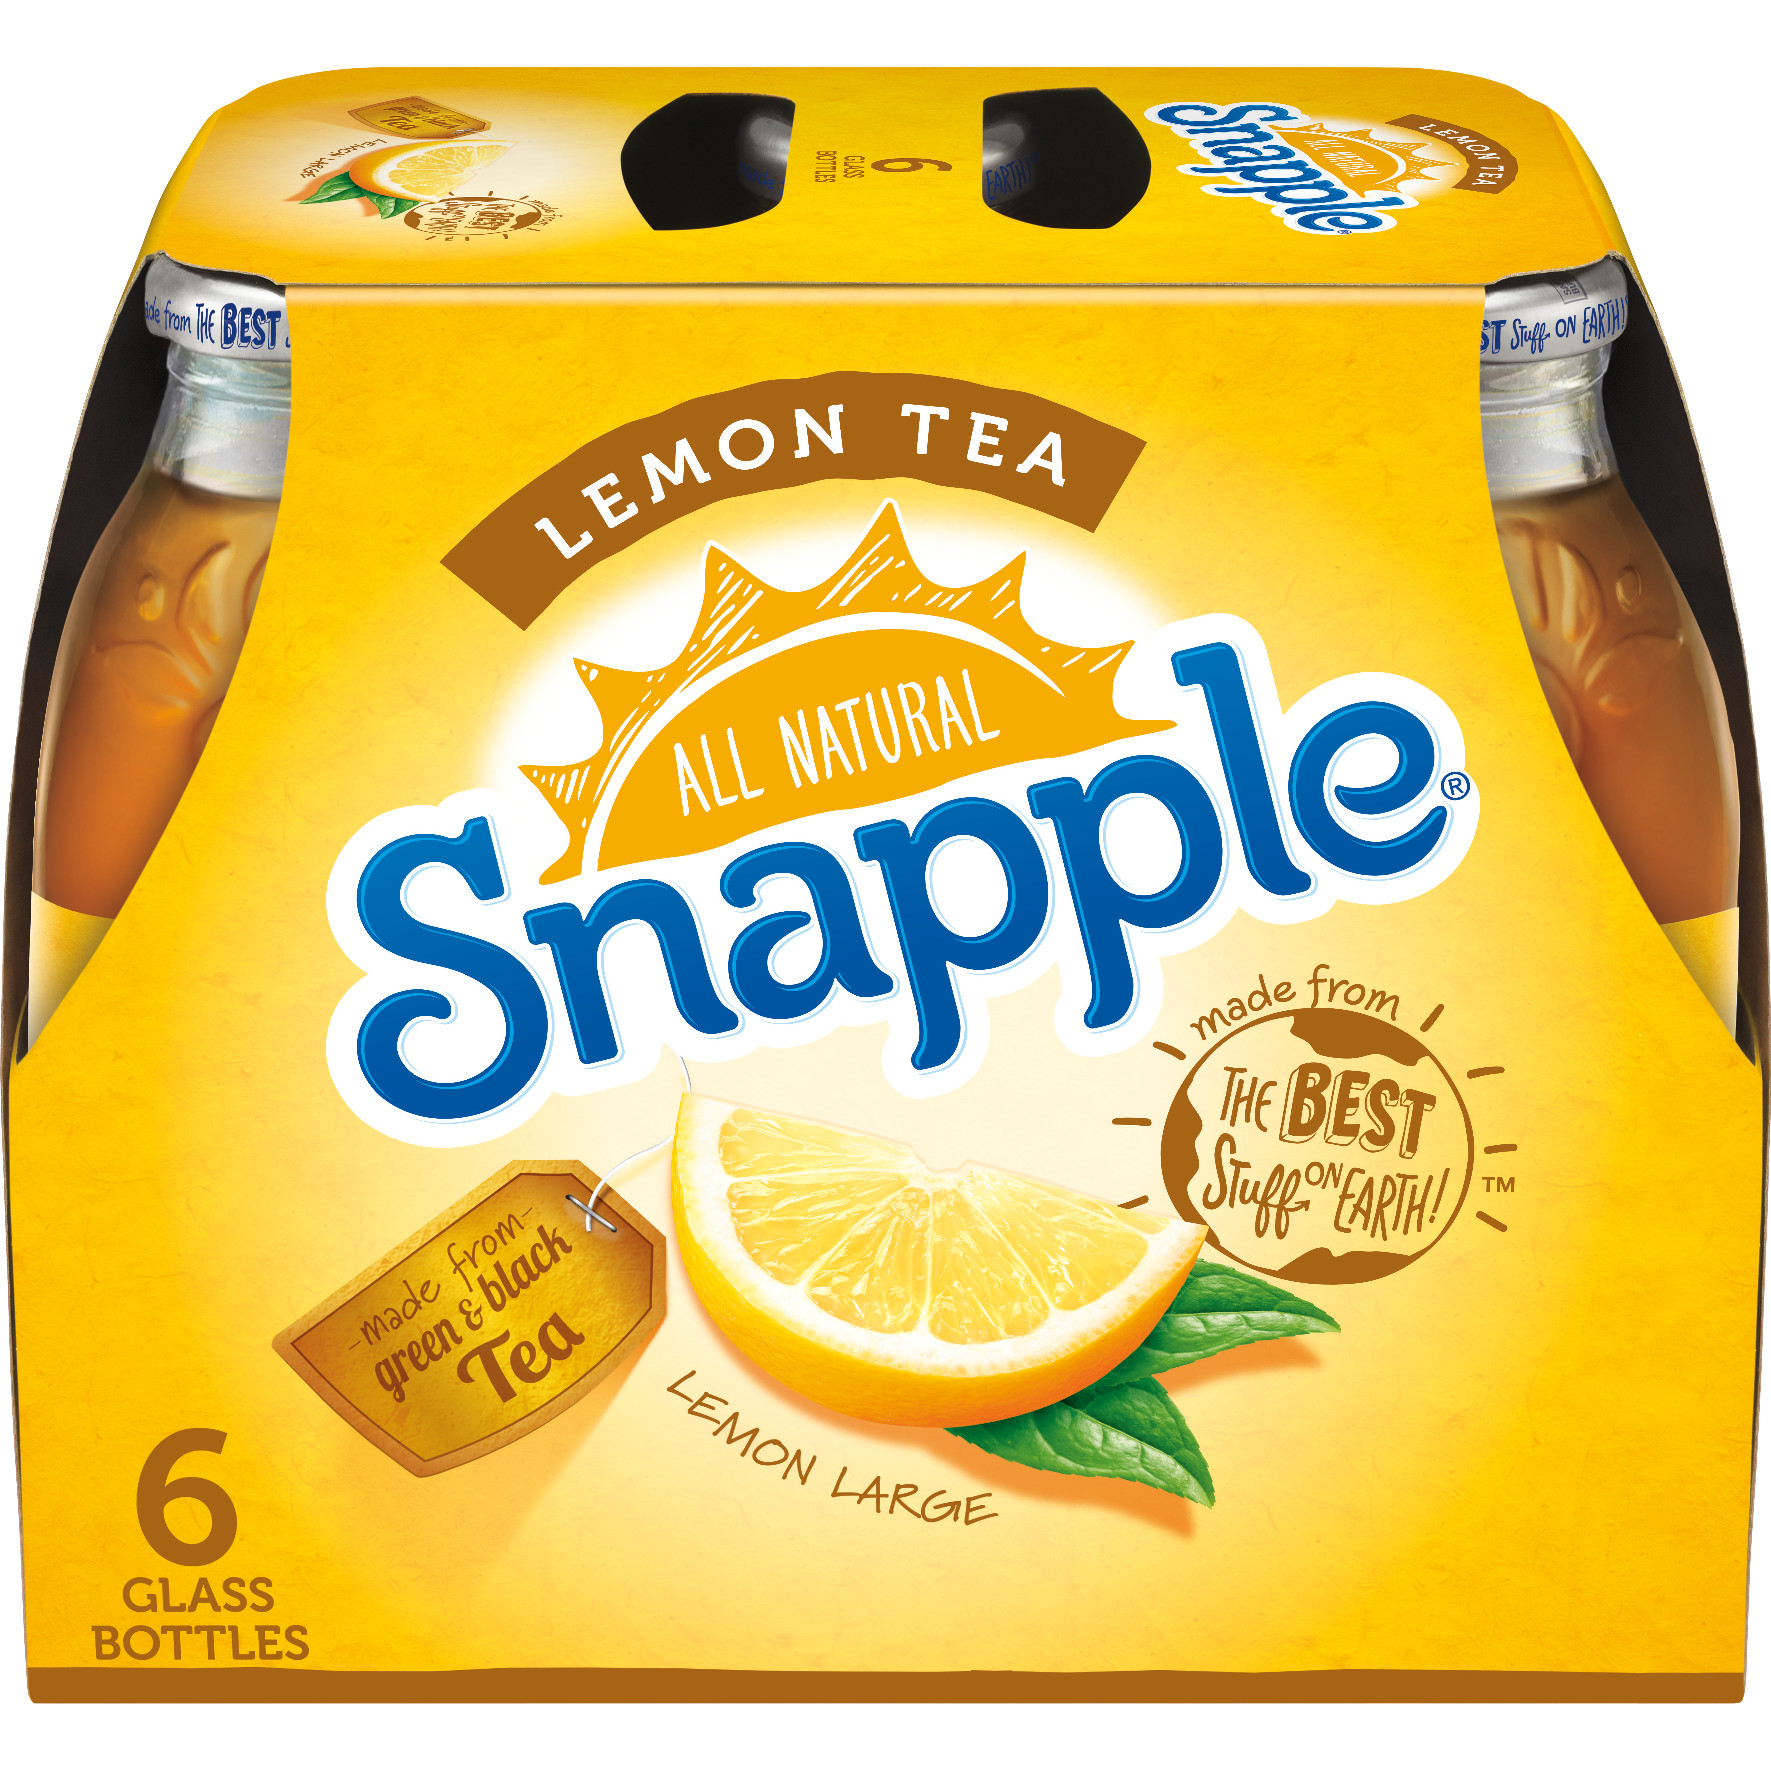 Snapple Lemon Tea, 16 fl oz, 6 pack